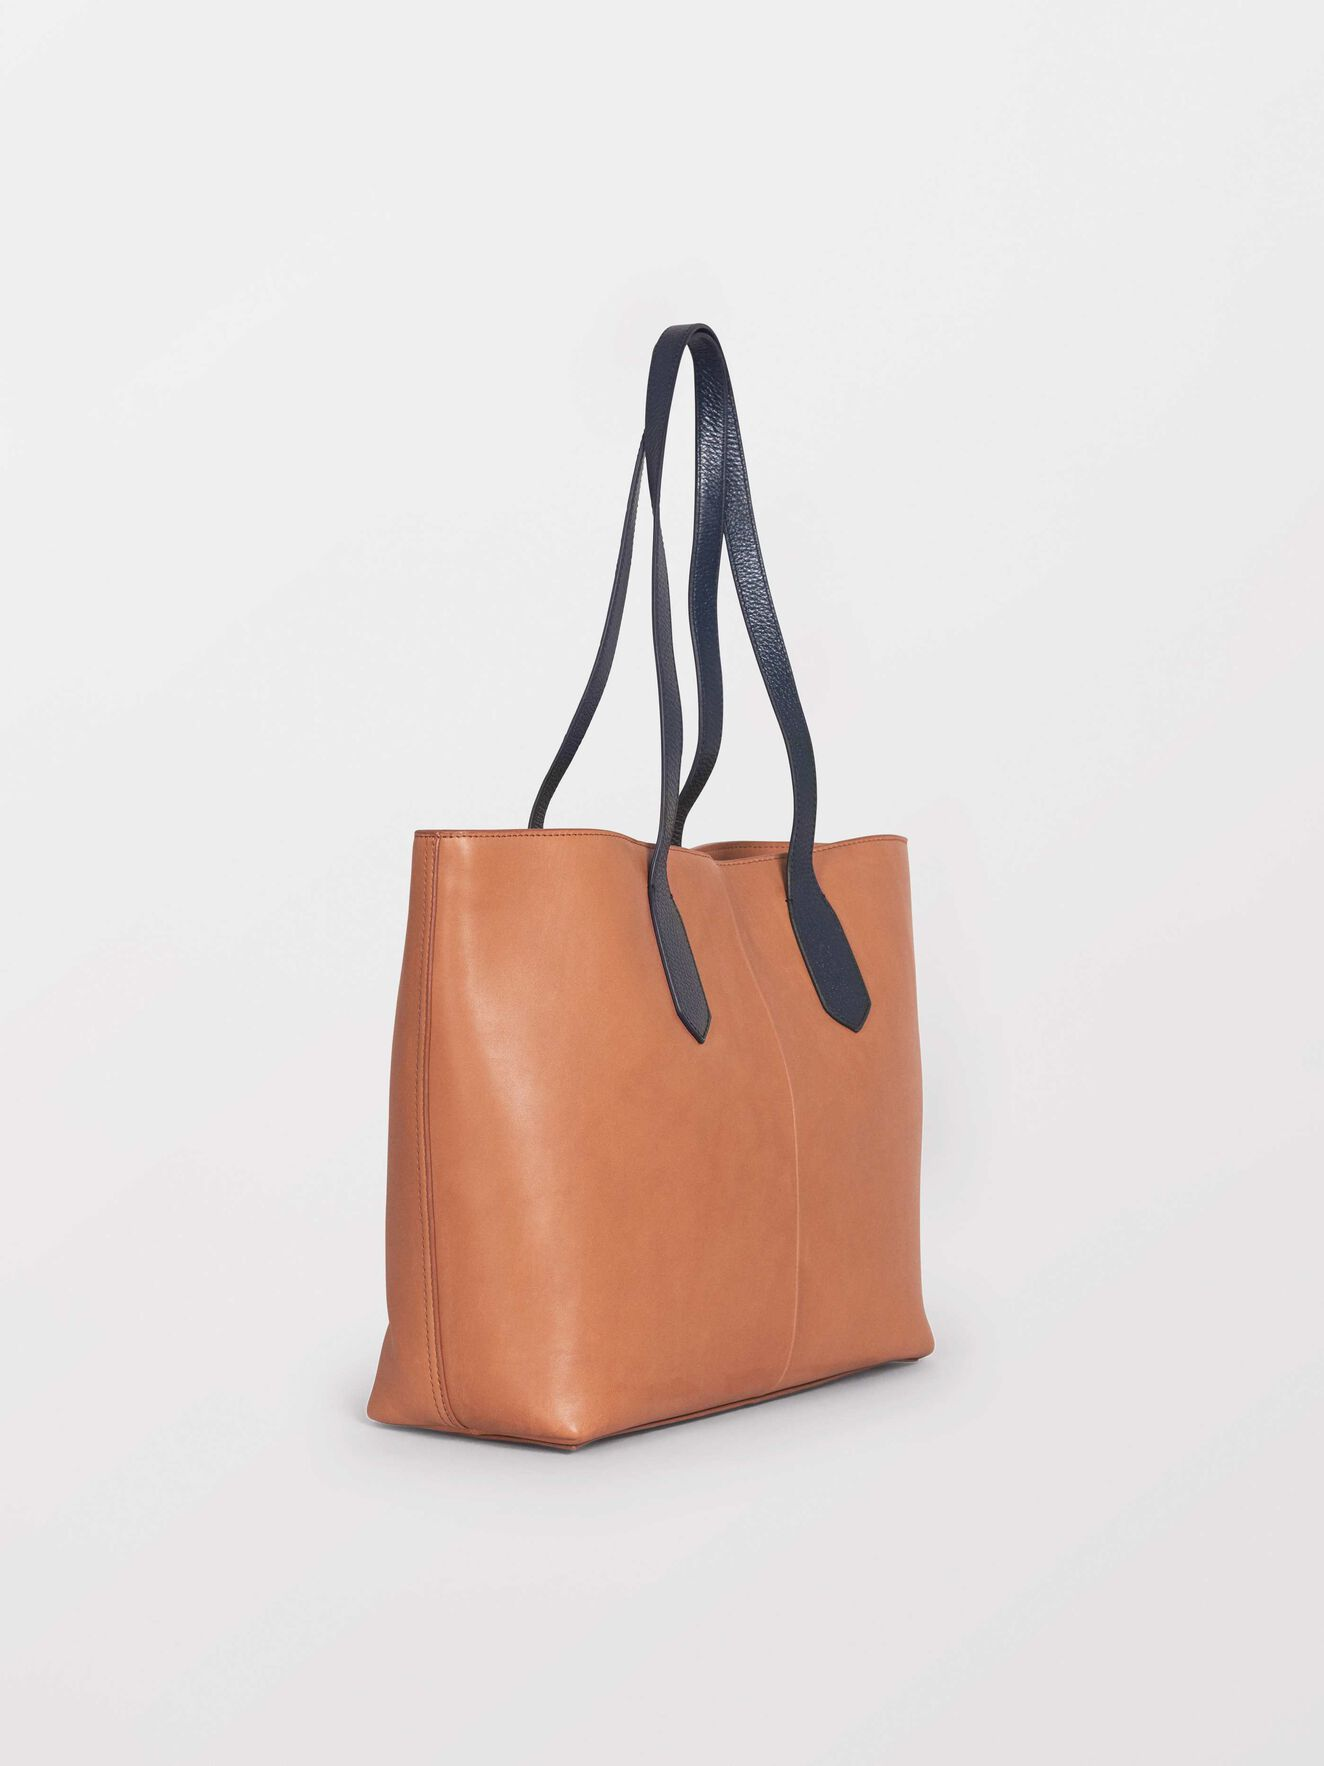 Ornitia Bag in Cognac from Tiger of Sweden